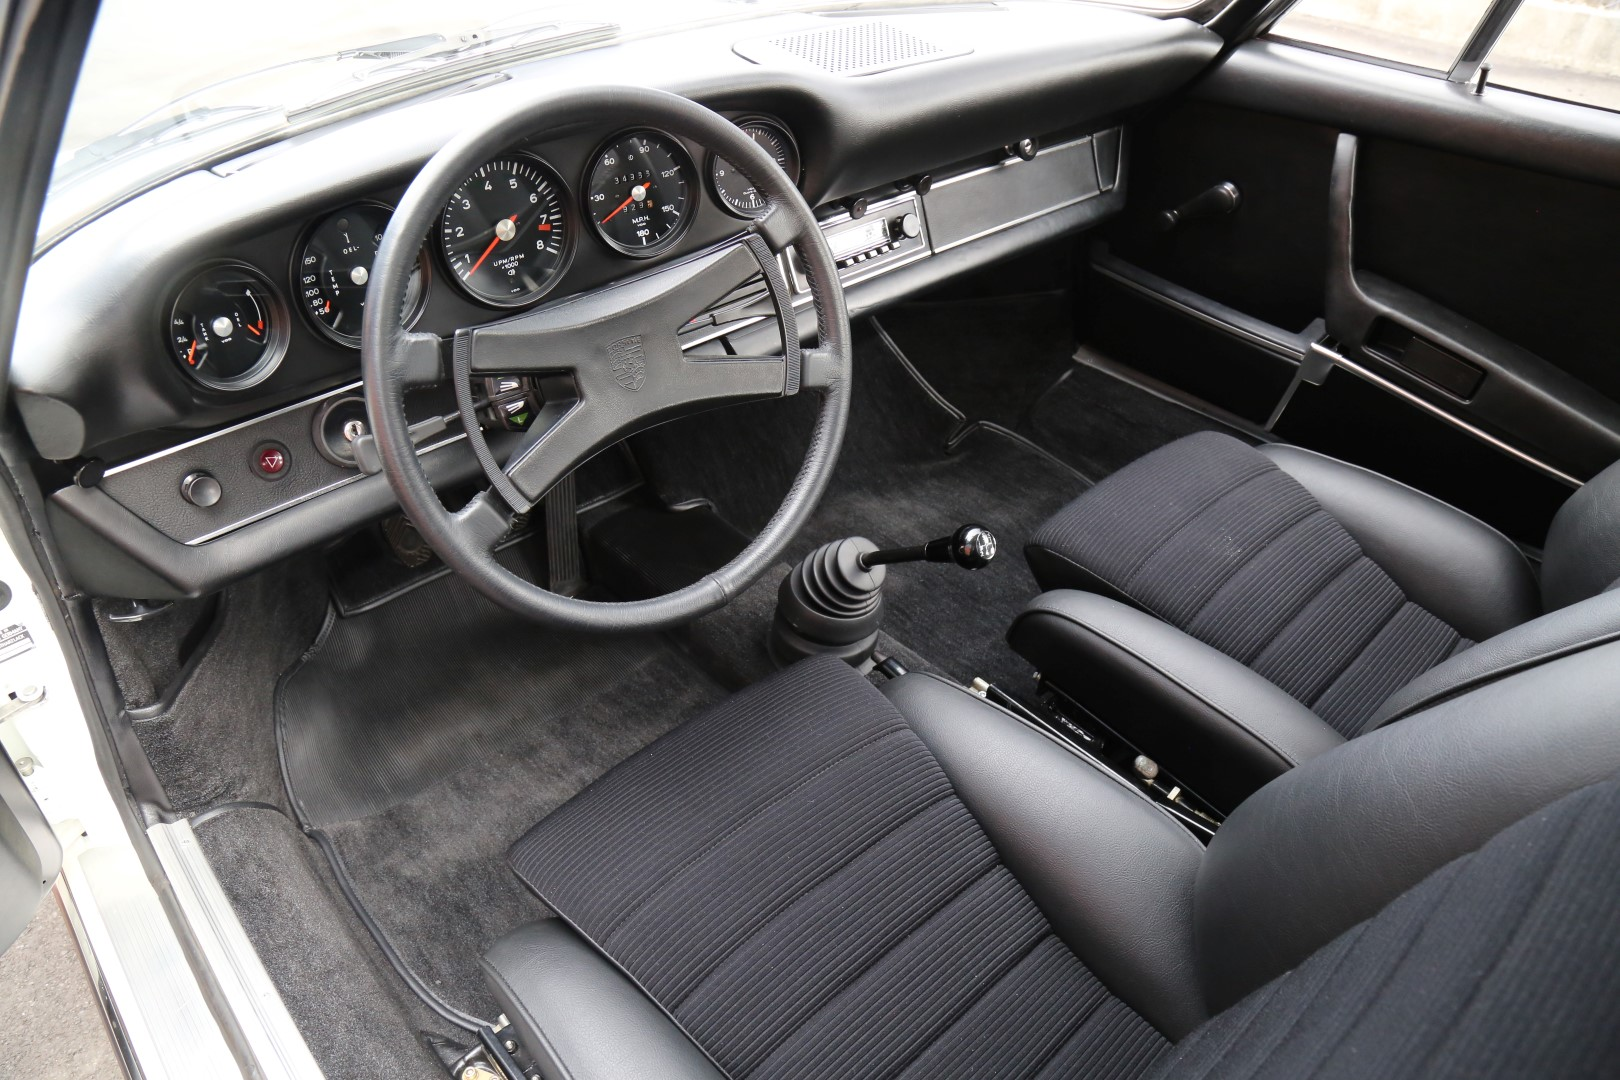 Porsche-911-Carrera-RS-2.7-1973-for-sale-36